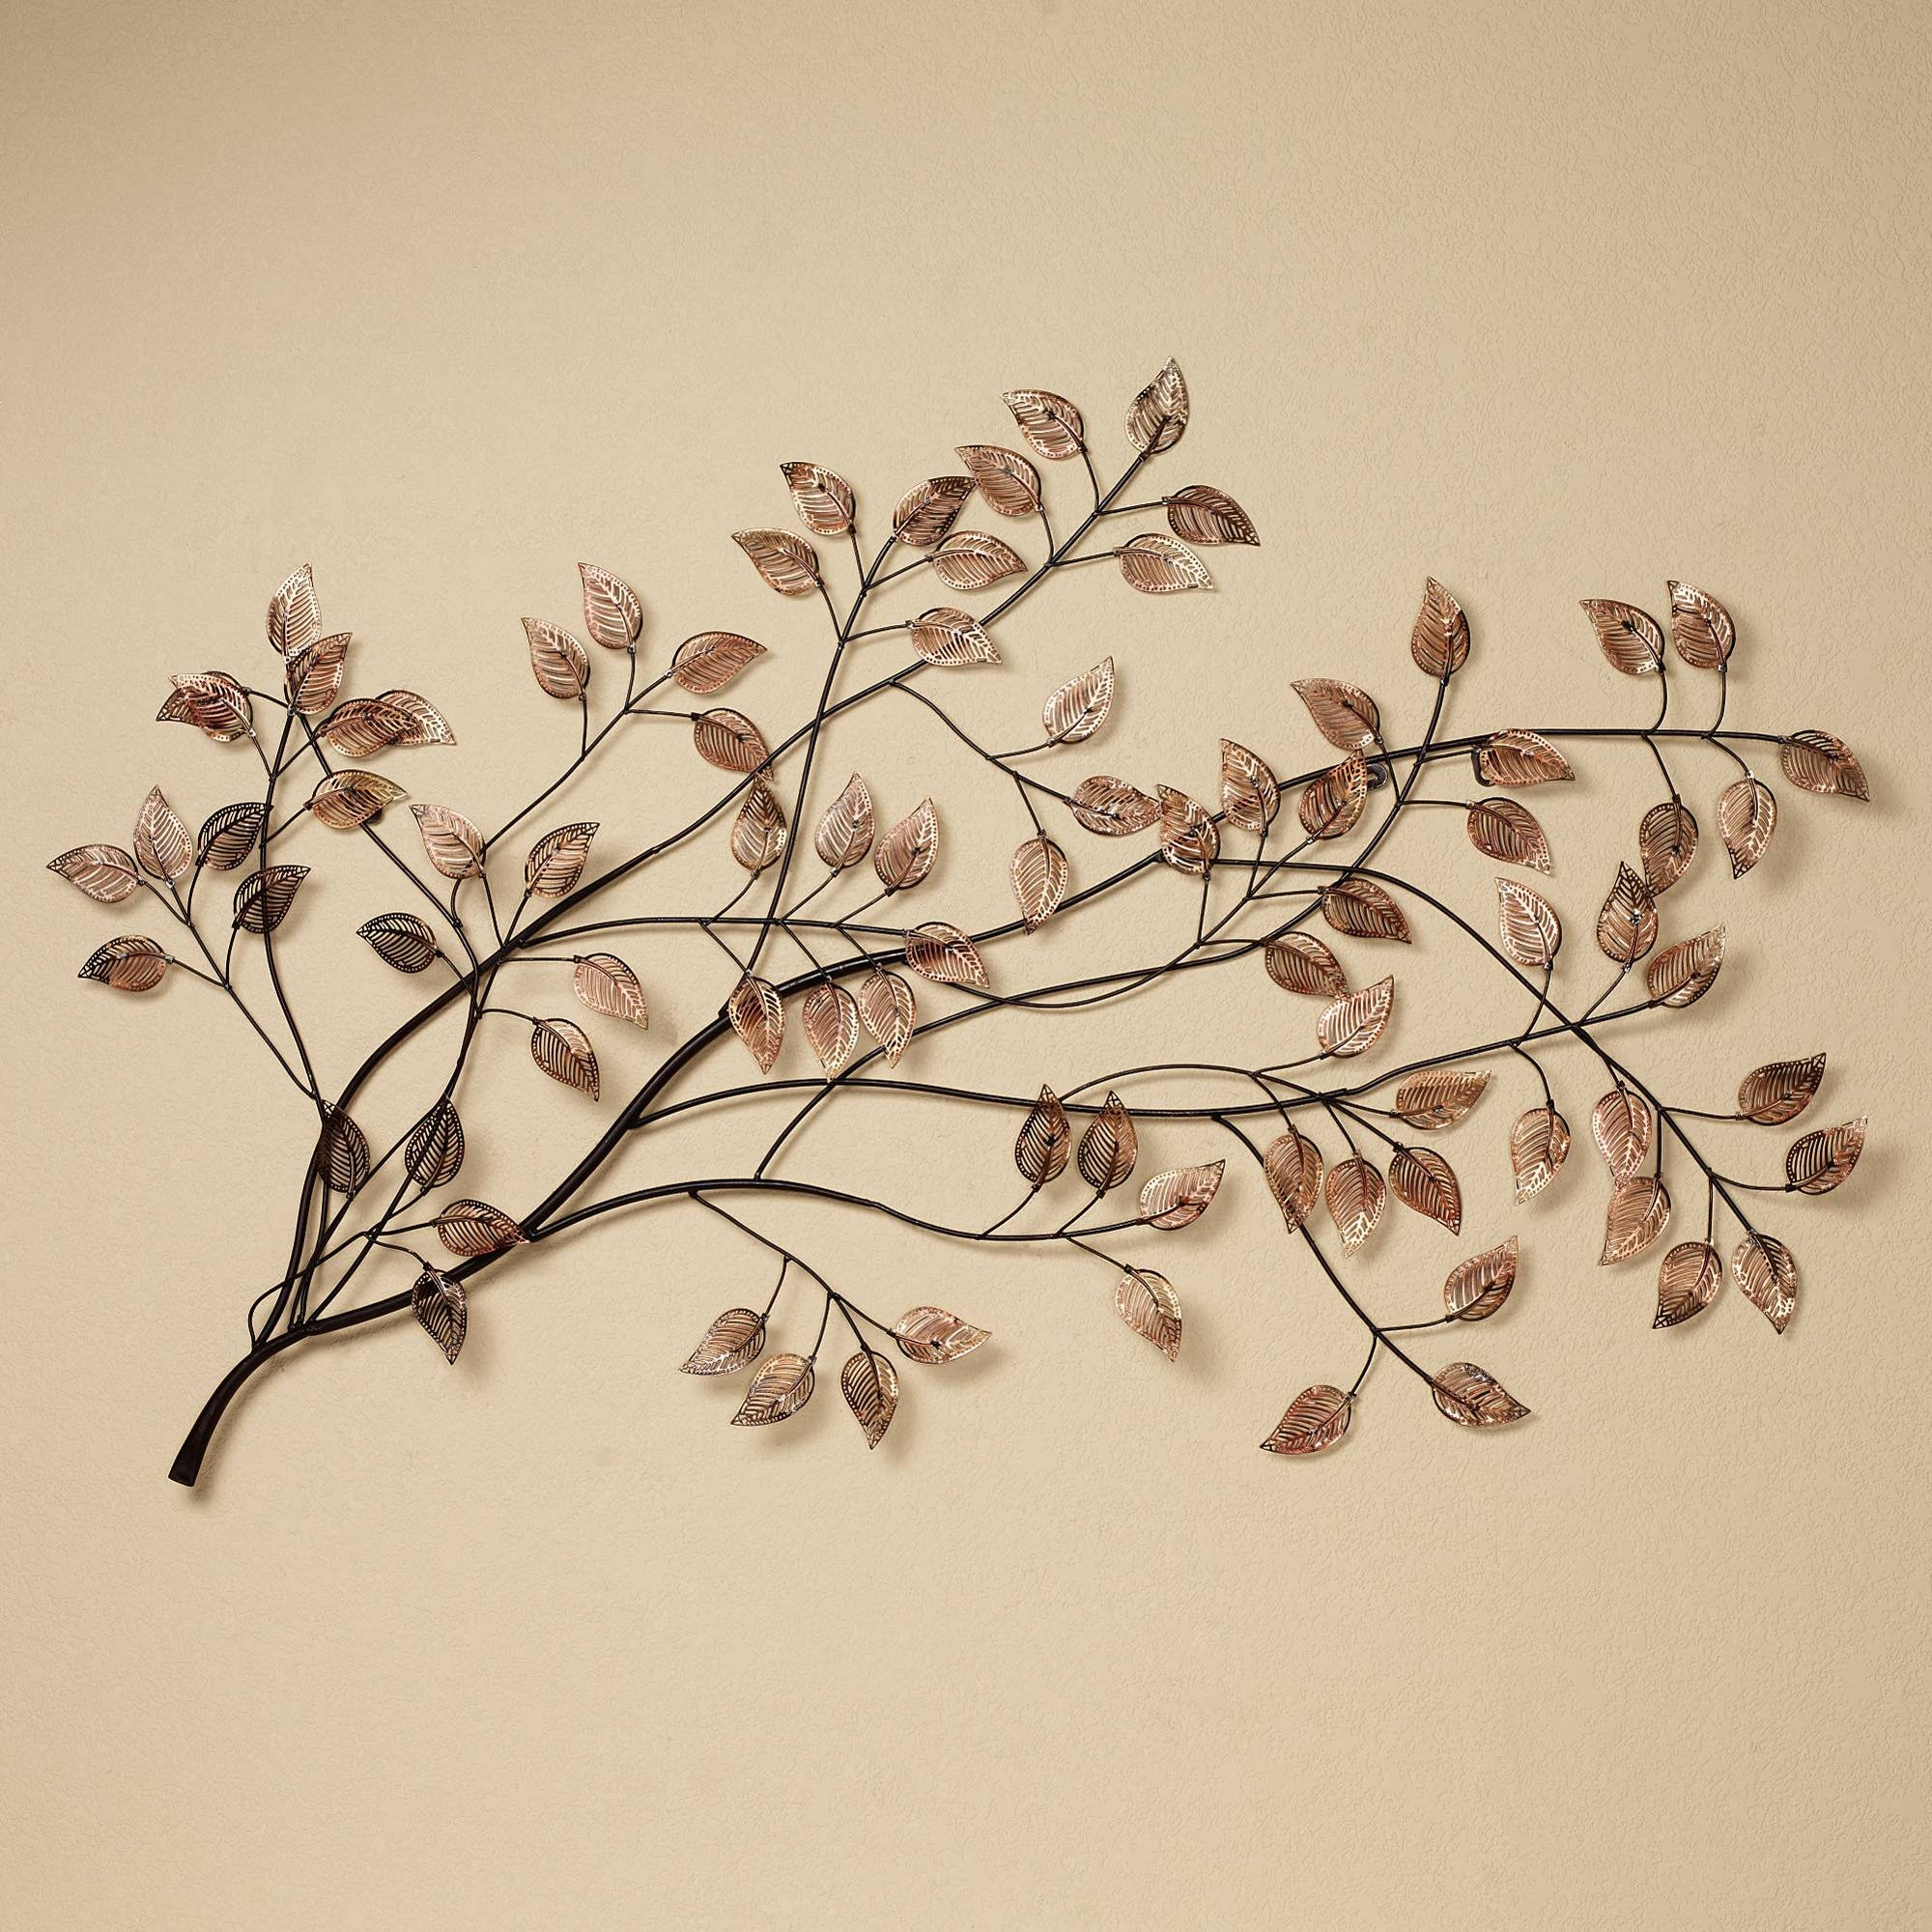 Wall Ideas: Tree Metal Wall Art Images. Design Decor (View 11 of 20)